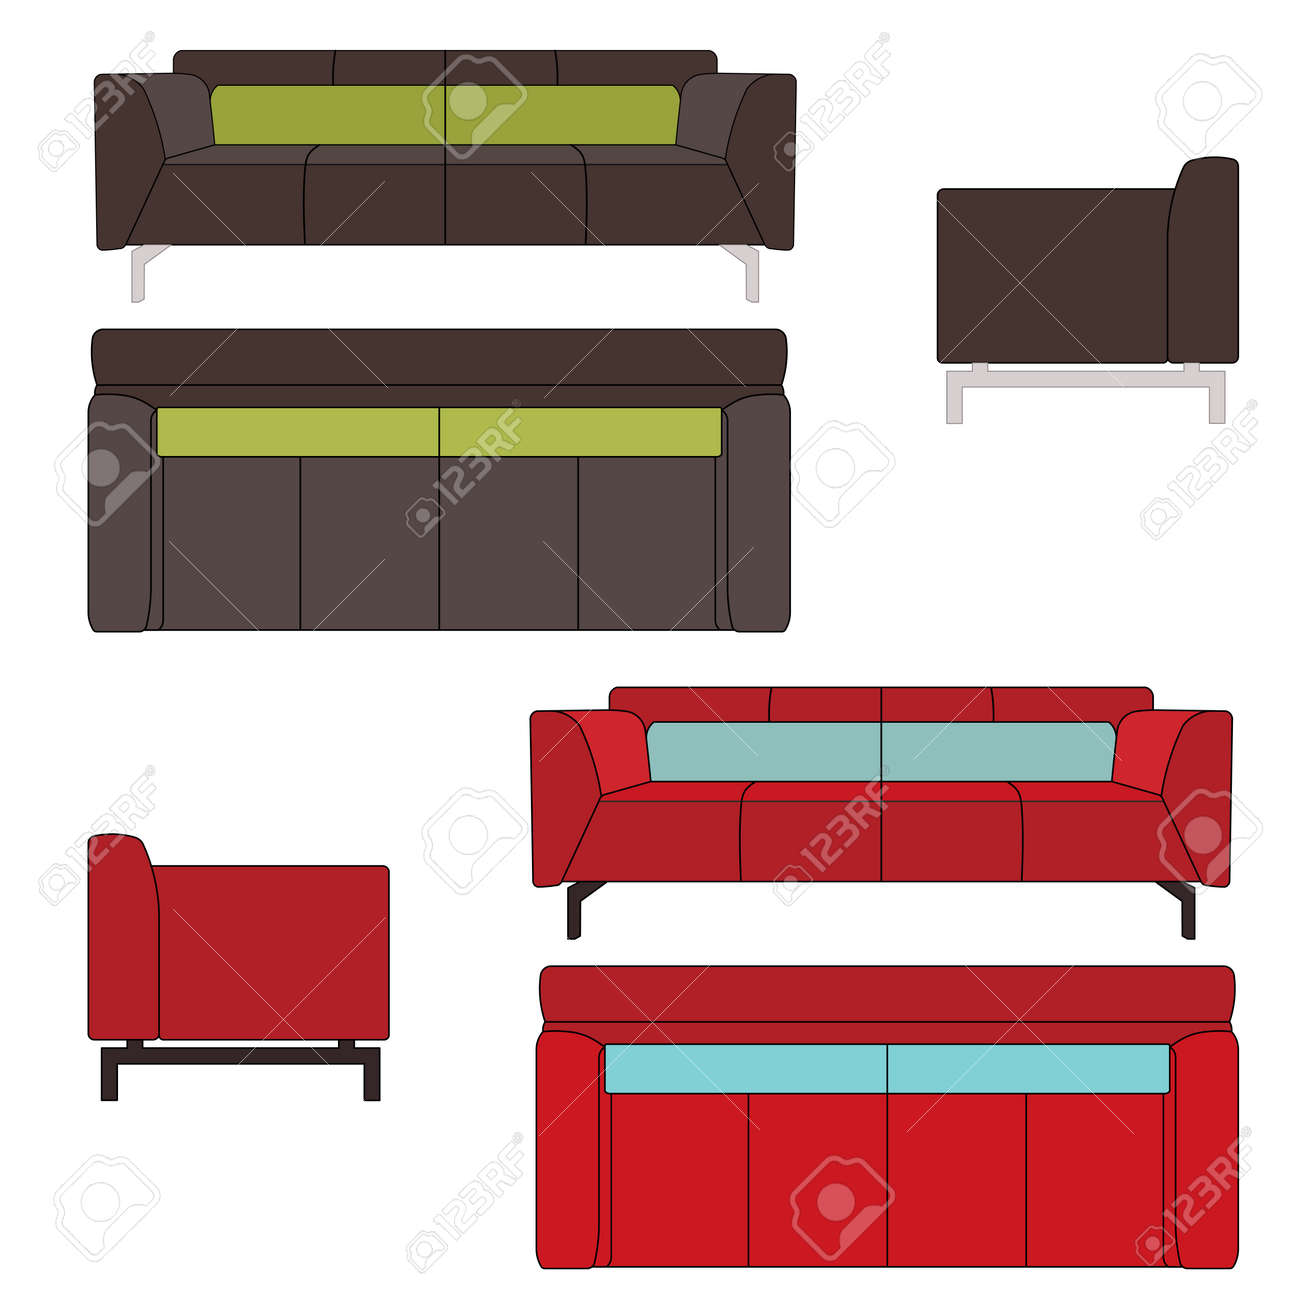 Sofa Set Flat Illustration Top Front Side View Royalty Free Cliparts